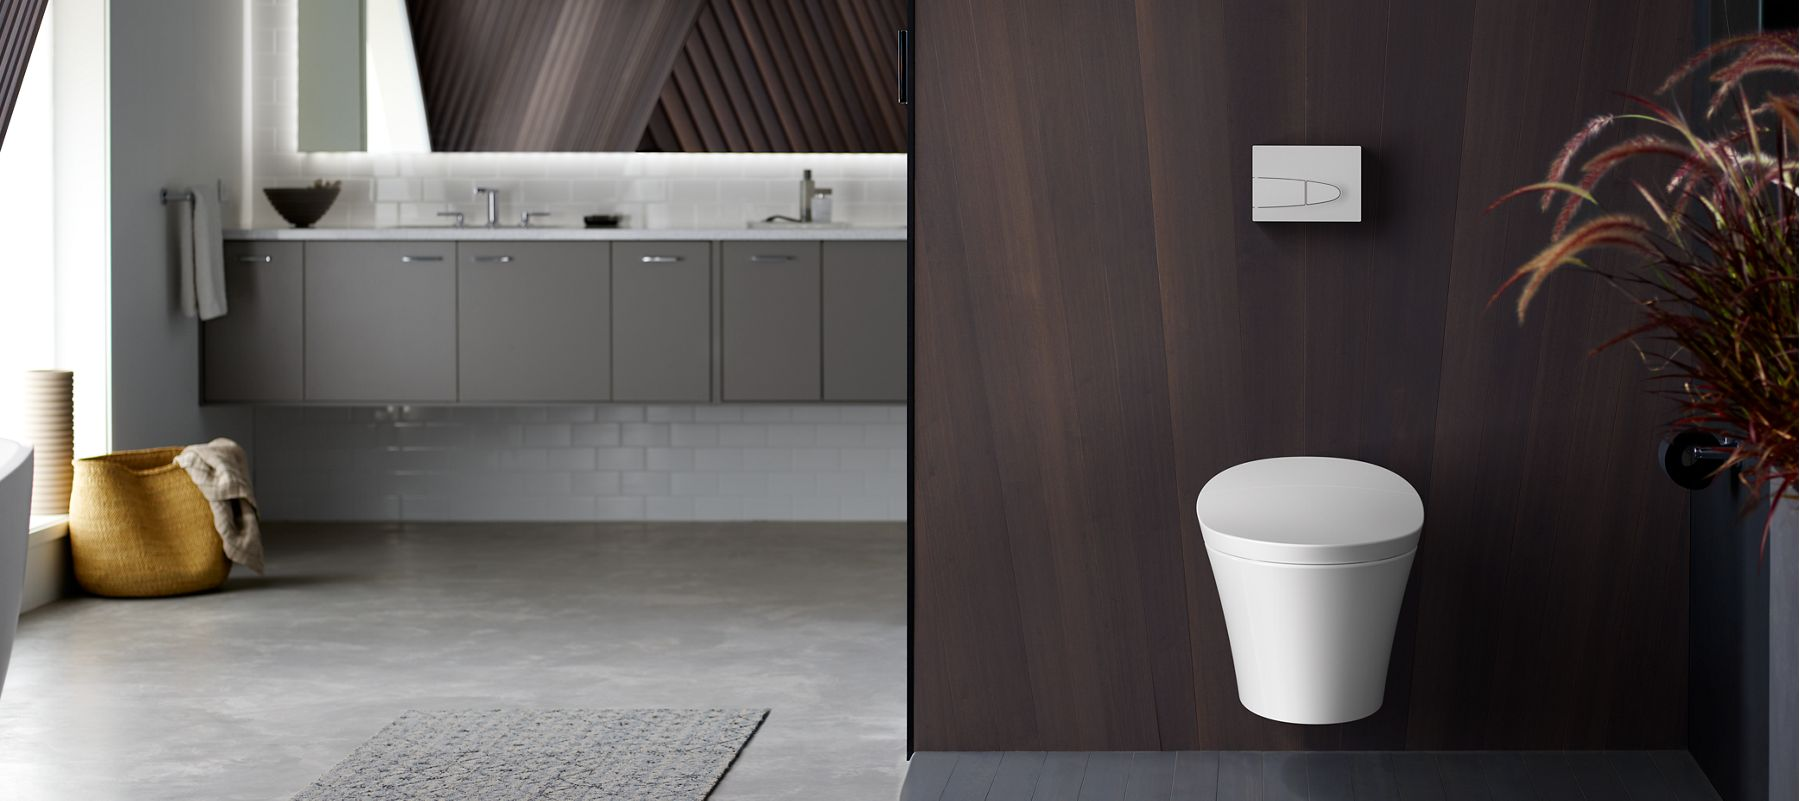 Shop all Toilets | Kohler.com | KOHLER